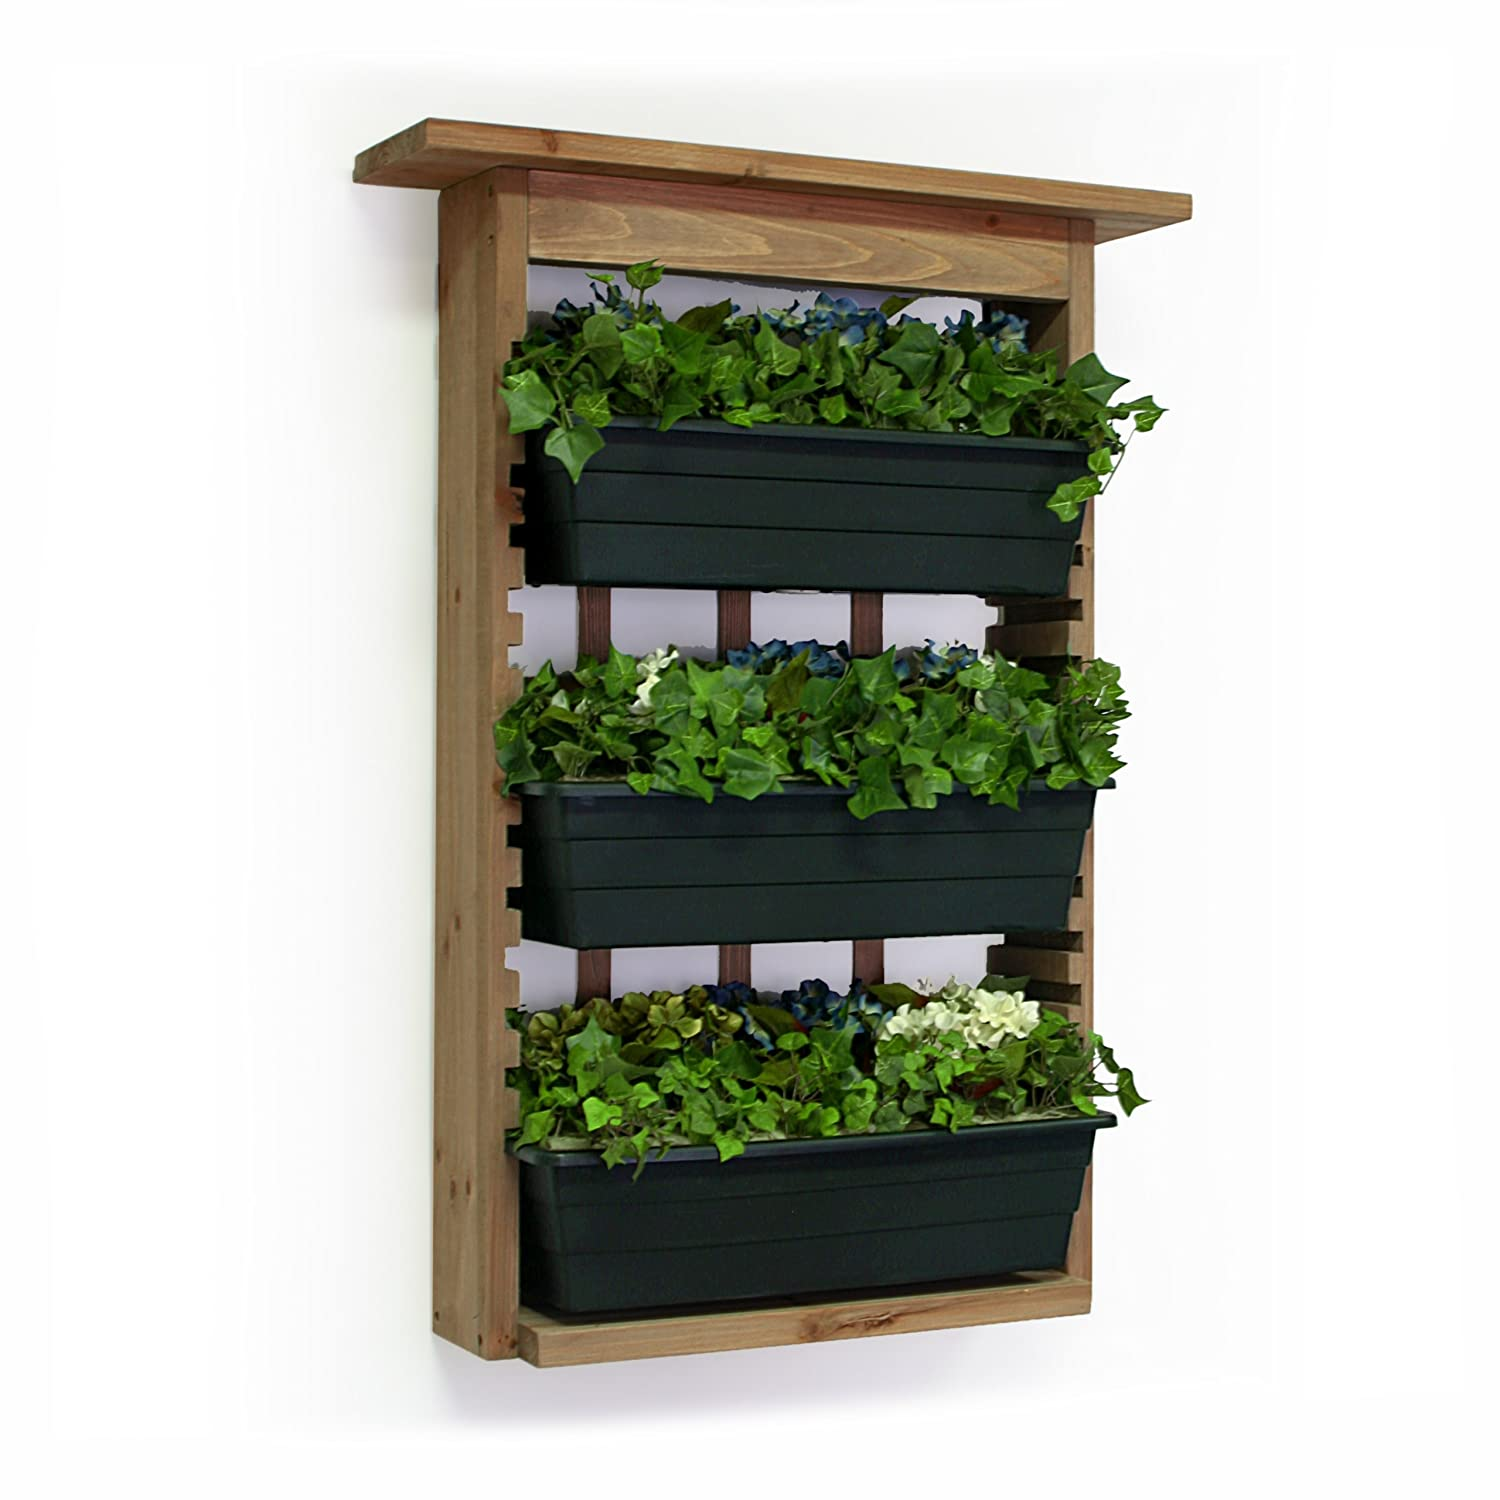 Algreen Vertical Wall Planter.